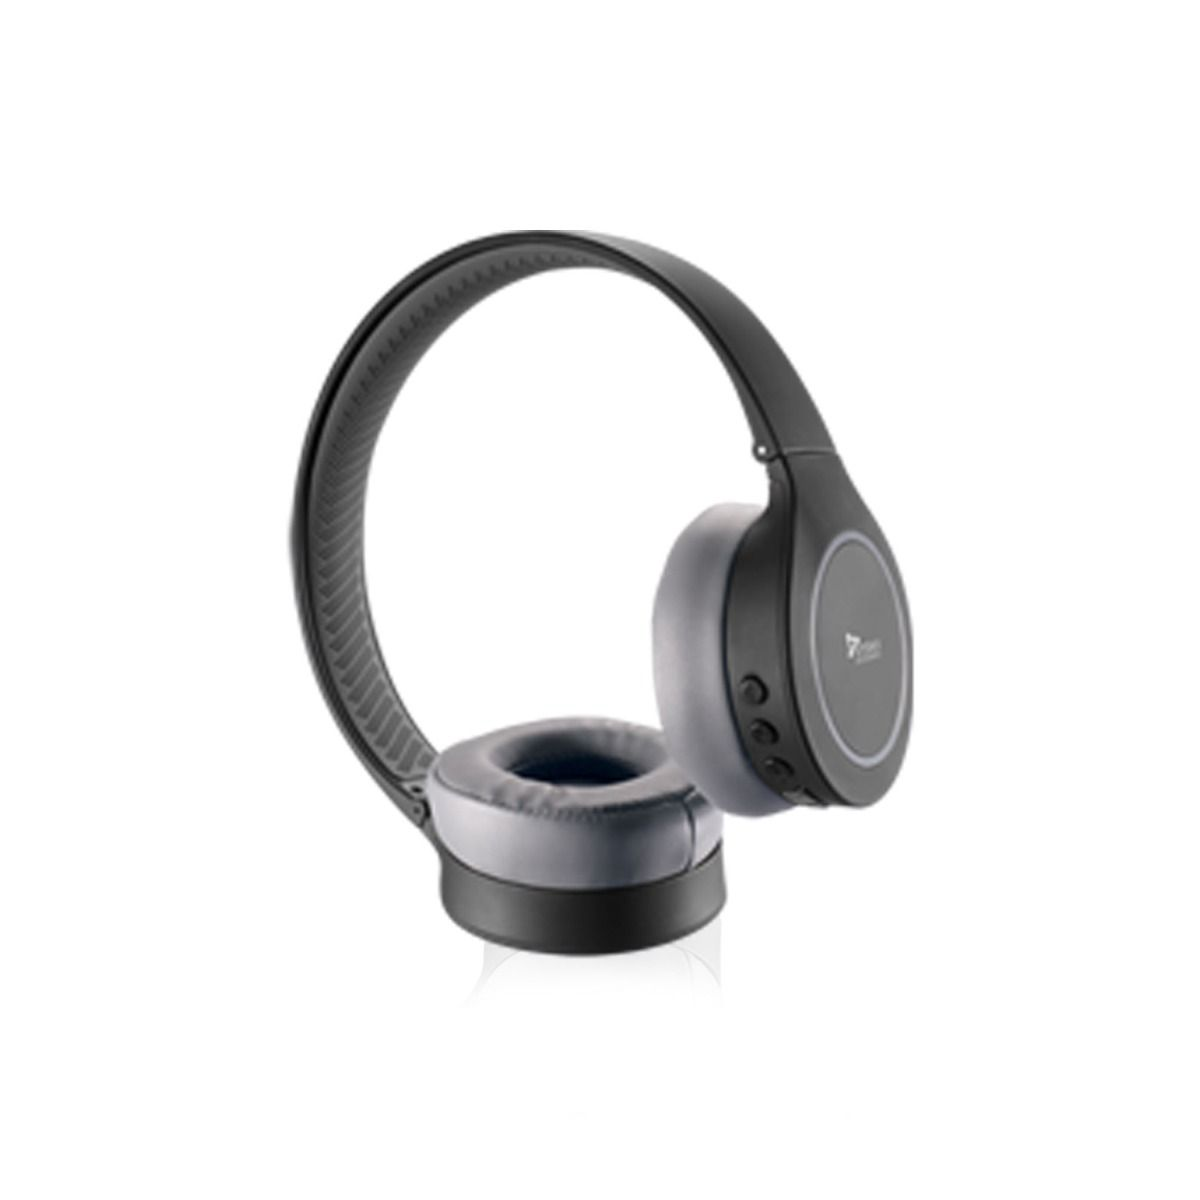 SoundPro HSB3000 Wireless Headphones